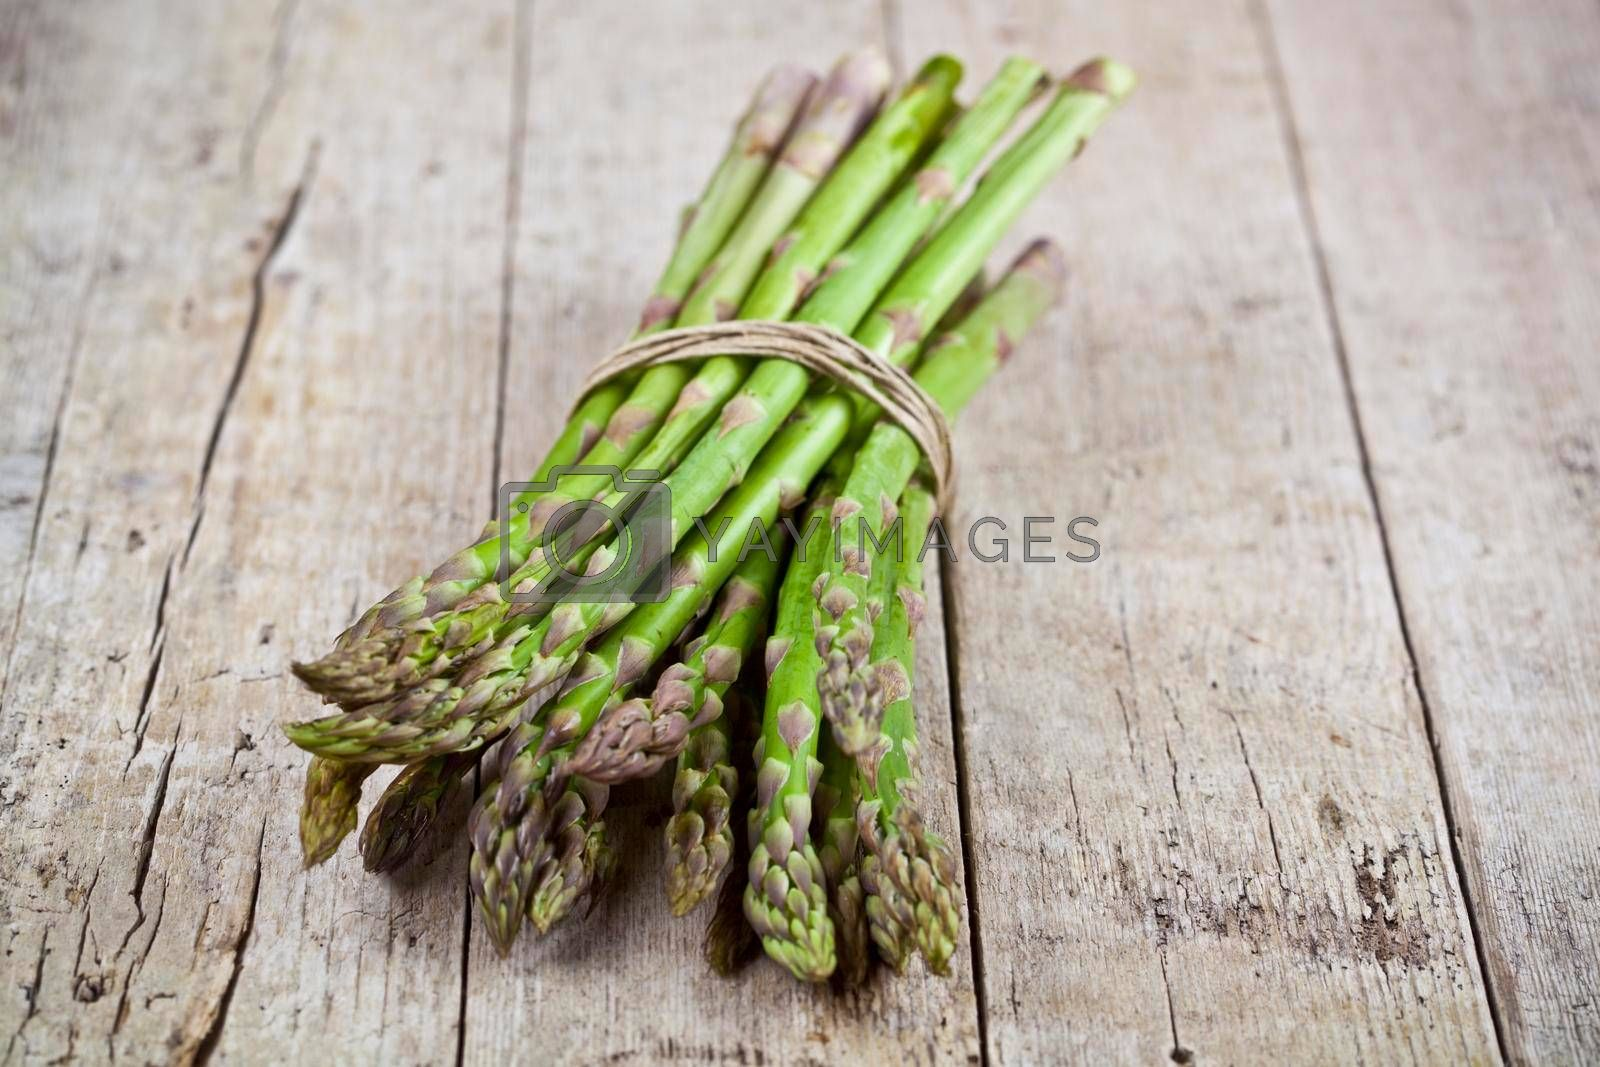 Bunch of fresh raw garden asparagus on rustic wooden table background. Green spring vegetables. Edible sprouts of asparagus.